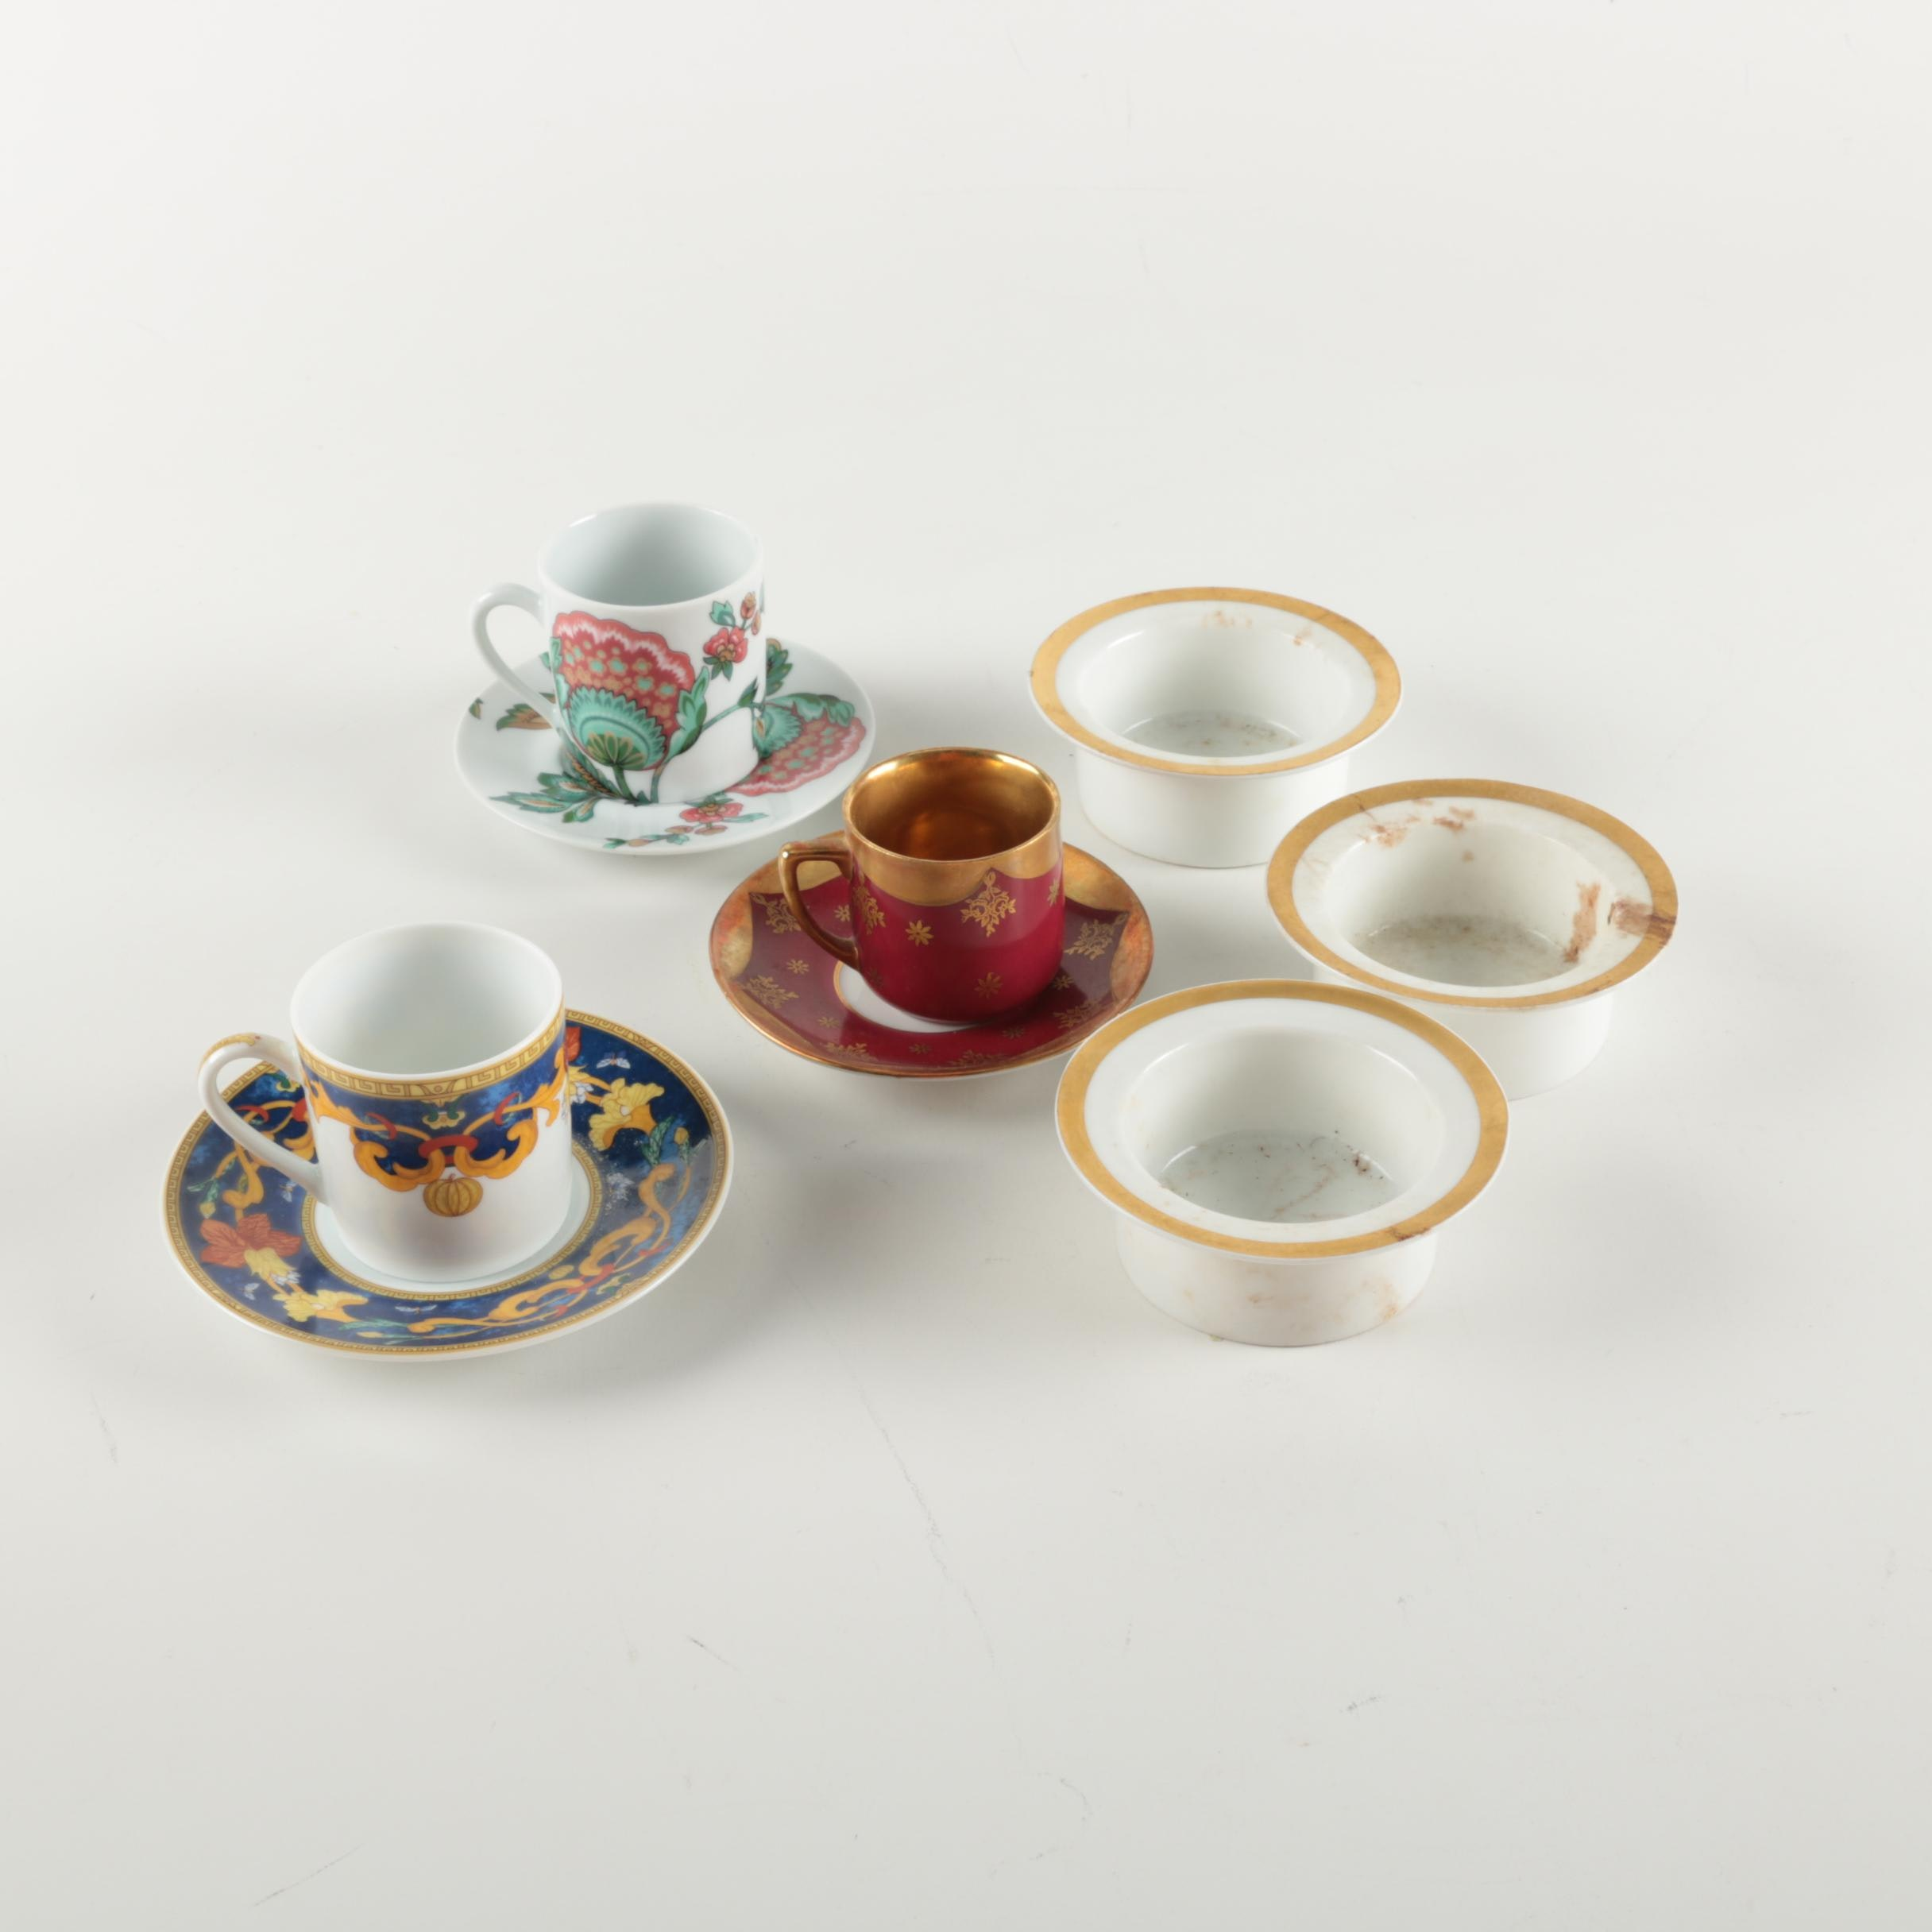 Assortment of Tableware Including Bavaria and Bernardaud Limoges